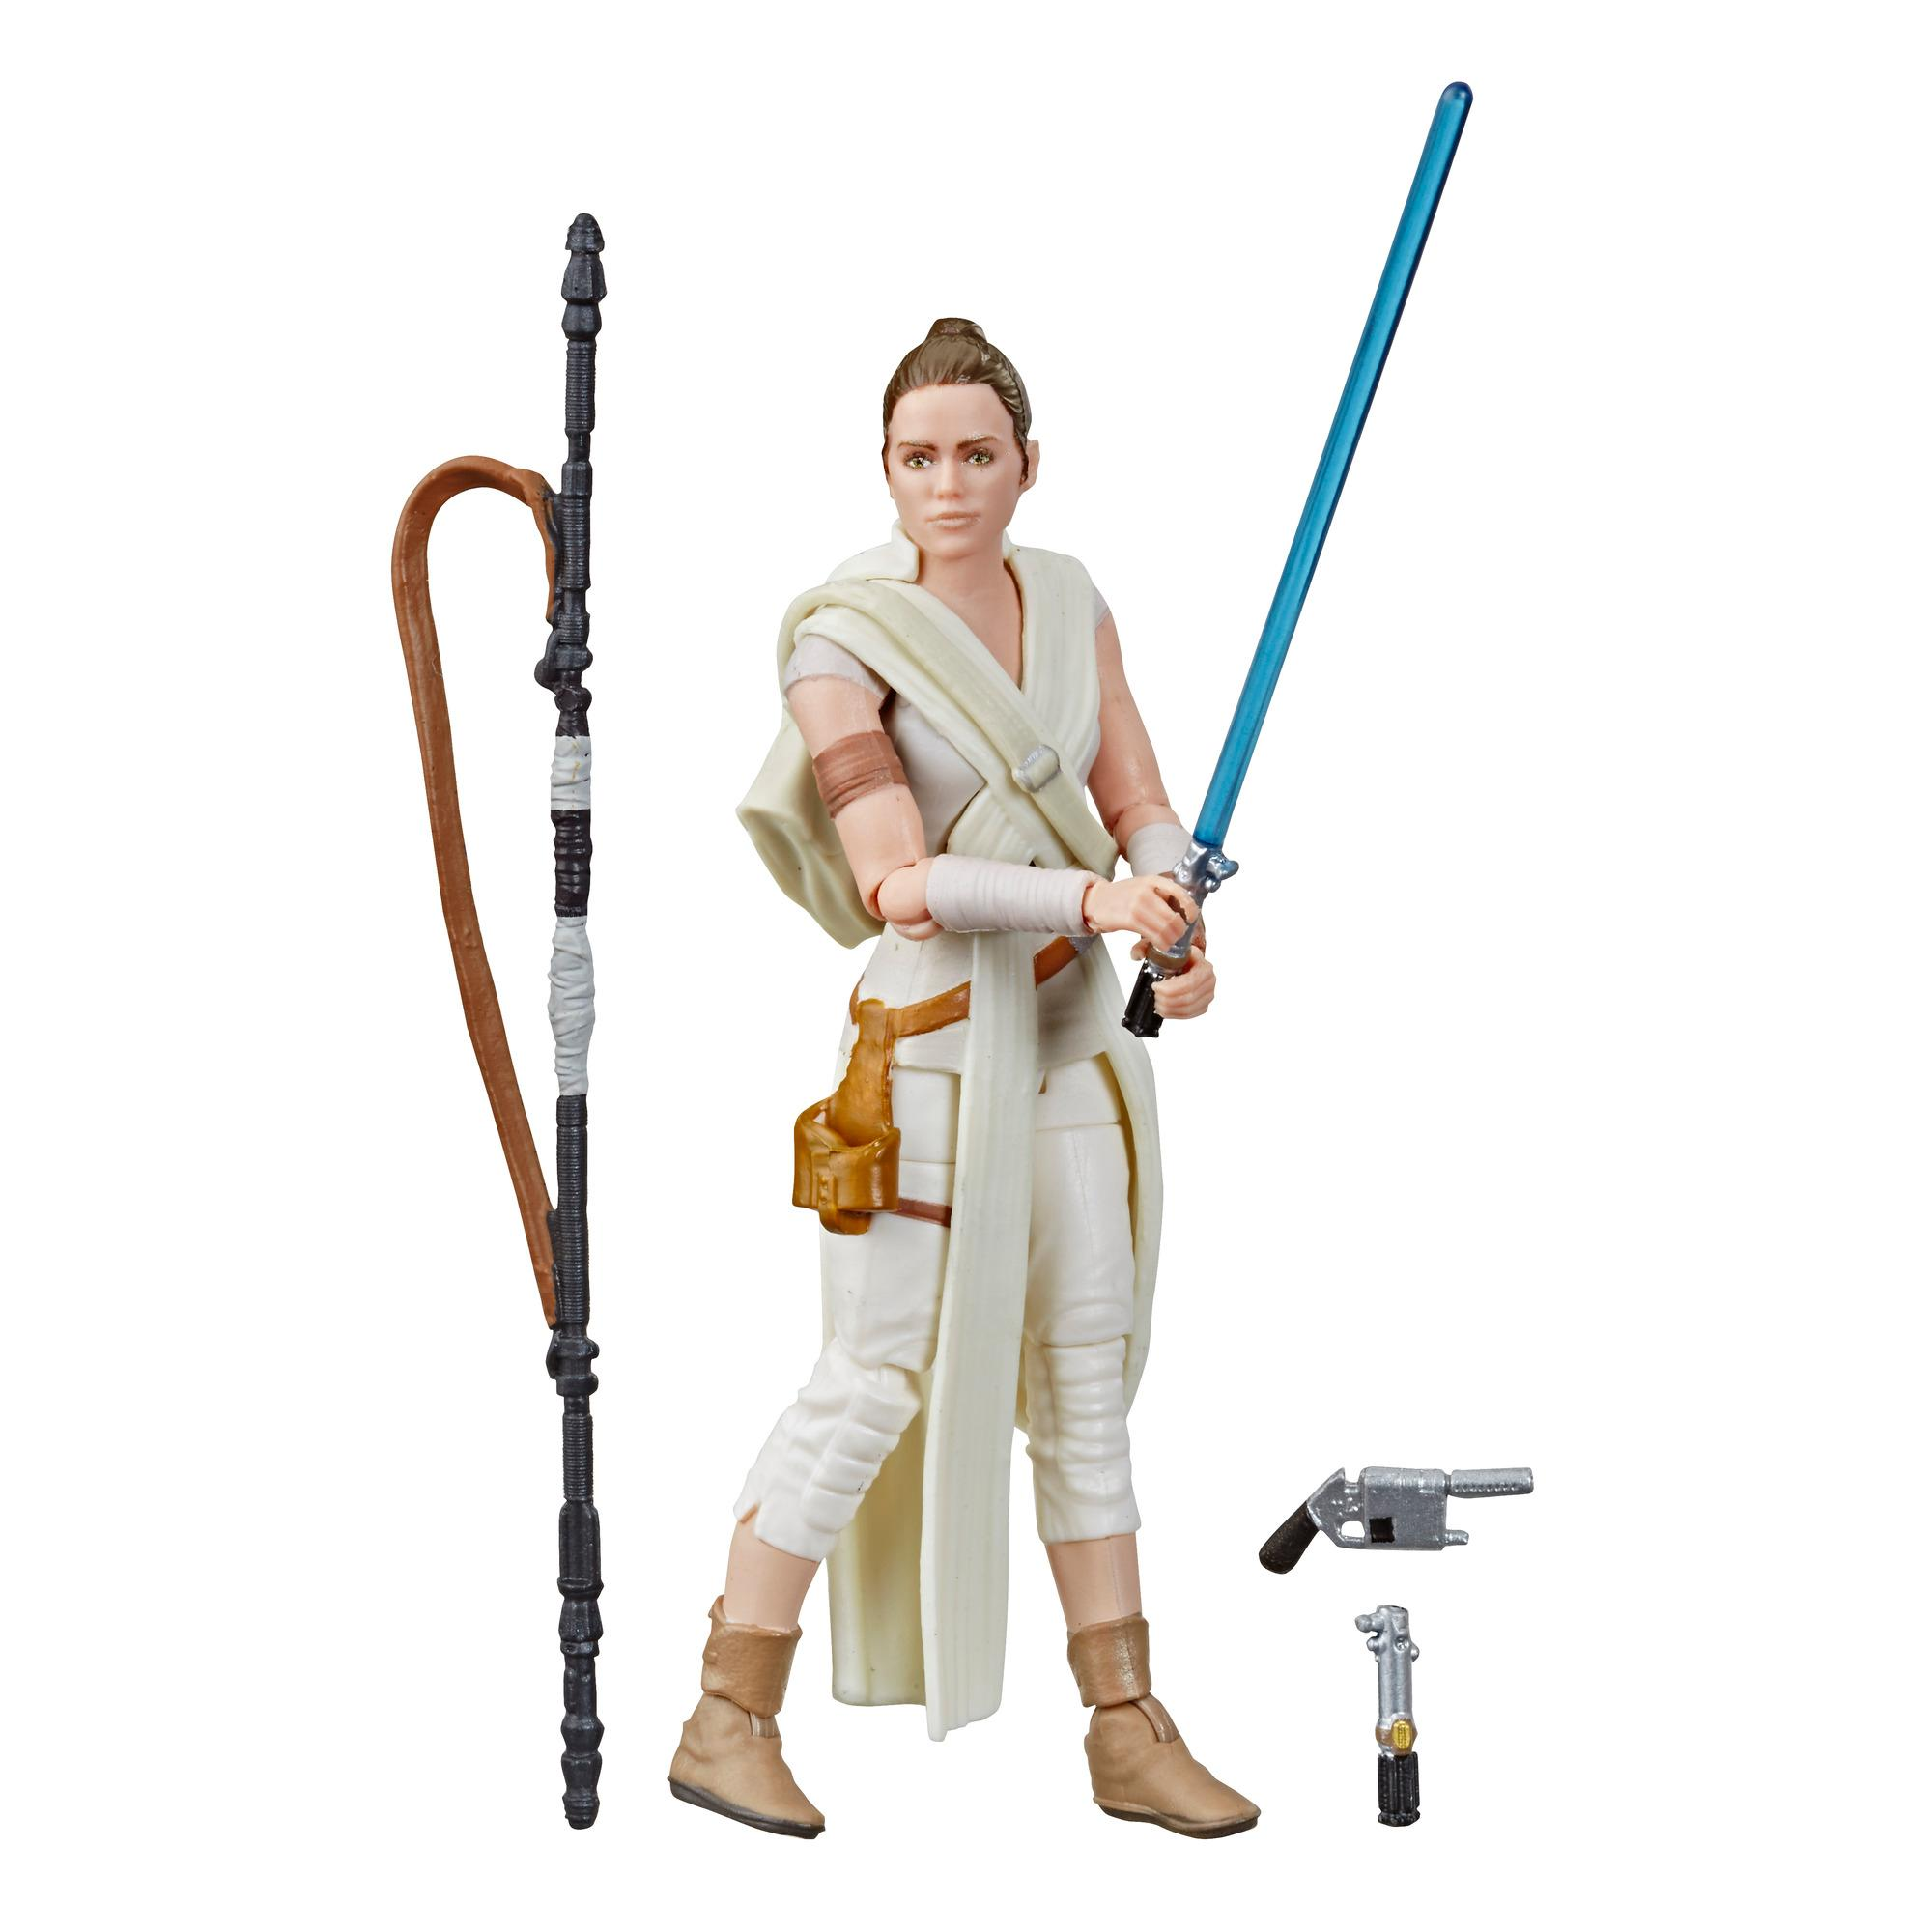 Star Wars The Vintage Collection Star Wars: The Rise of Skywalker Rey Toy, 3.75-inch Scale Action Figure, Ages 4 and up